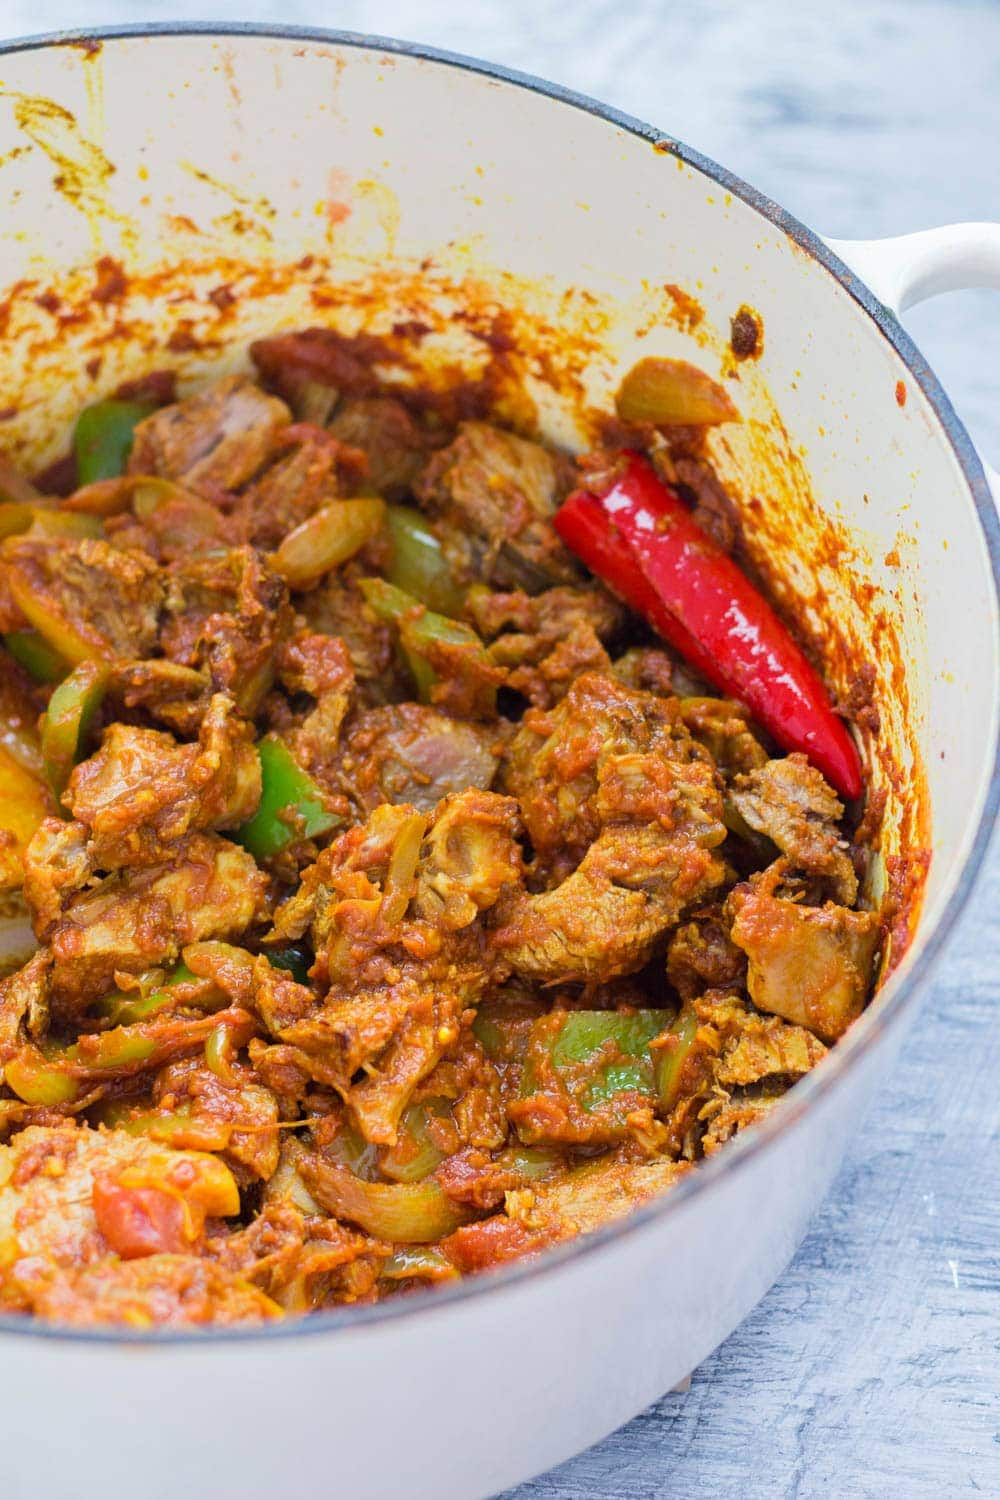 This turkey curry recipe is great for using up Thanksgiving or Christmas leftovers. It's healthy and quick to make so perfect for the busy holiday season!